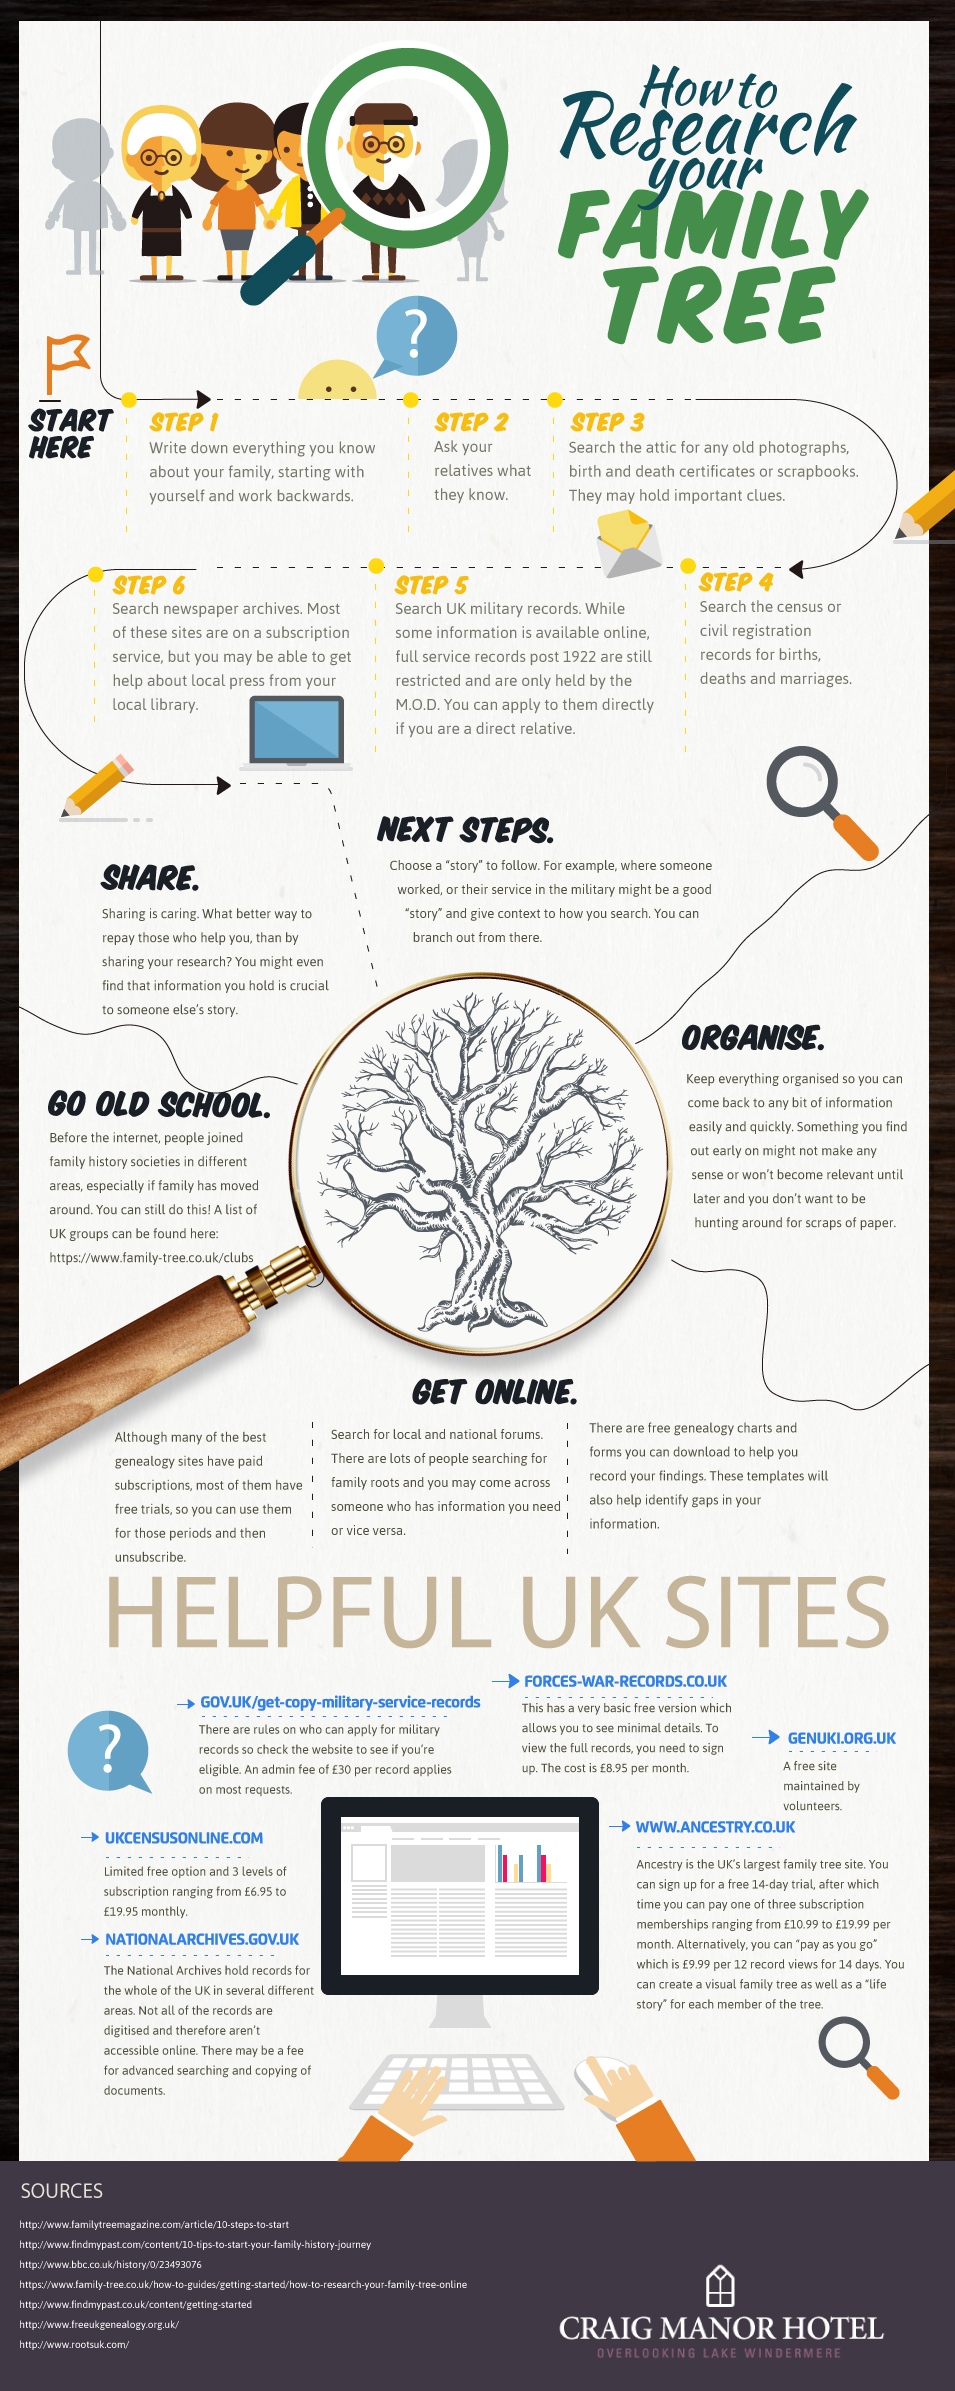 Getting To Know Your Entire Family Tree - Infographic